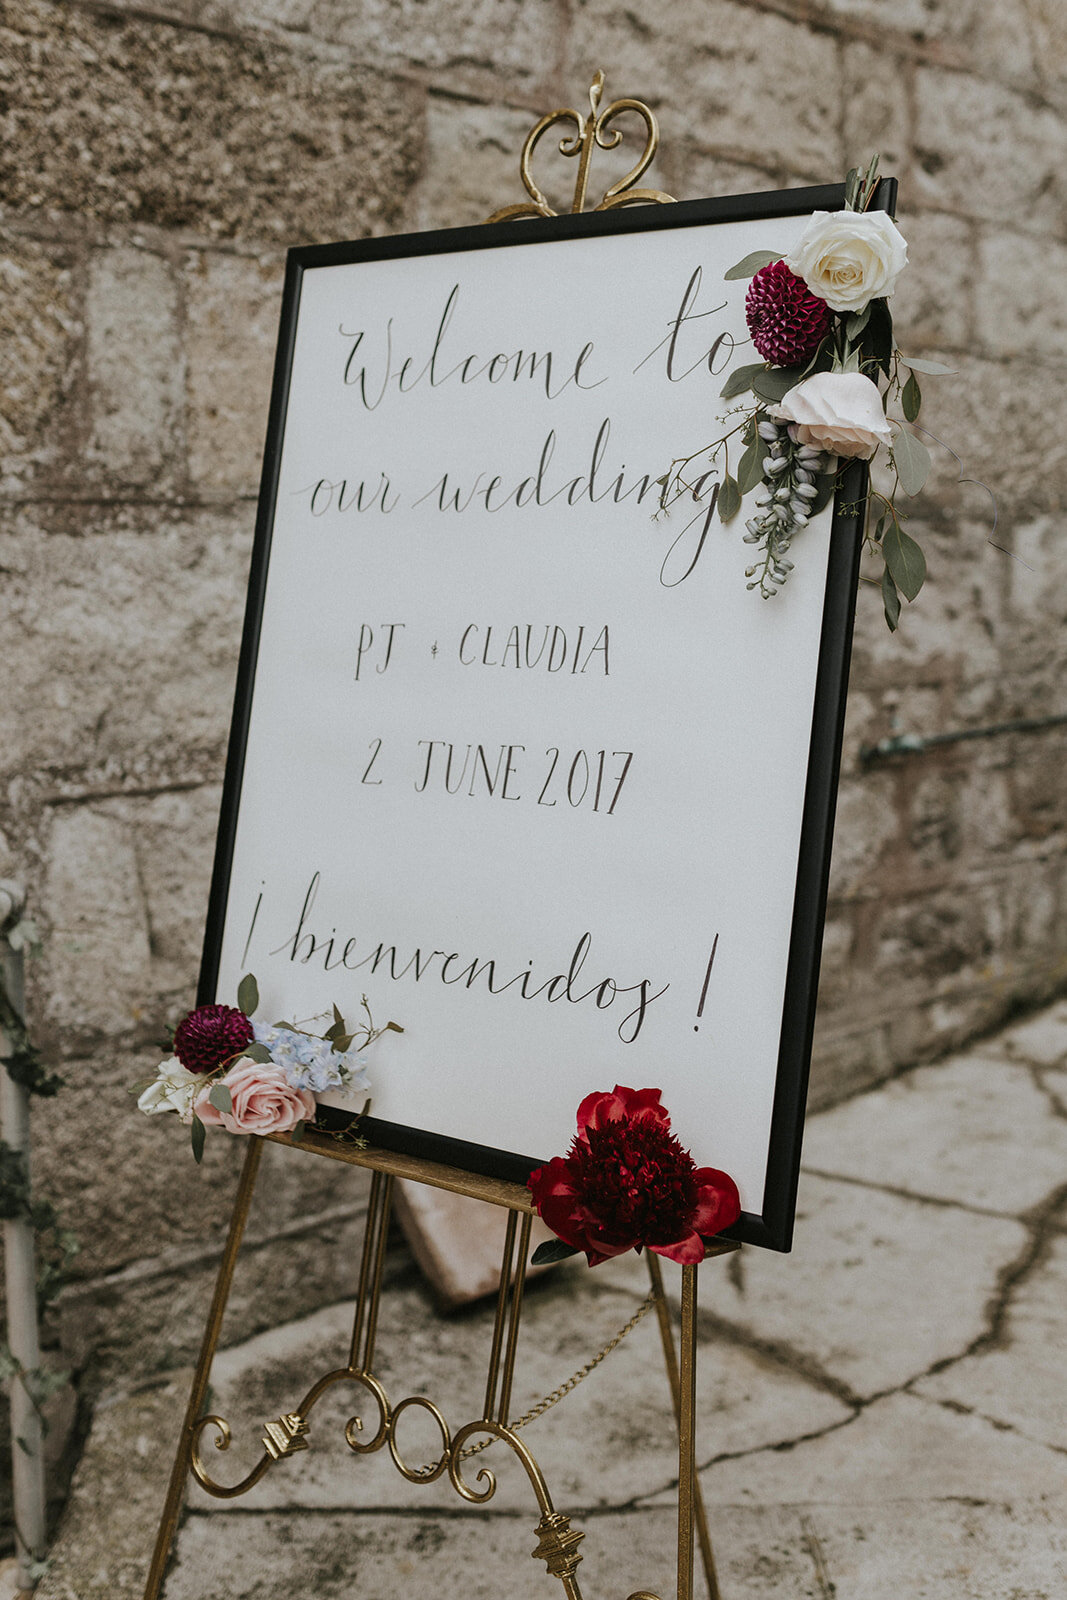 UK-wedding-Destination-Photograher-st-ives-cornwall-london-photographer-elopement-claudia-pj-wedding-1389_websize.jpg